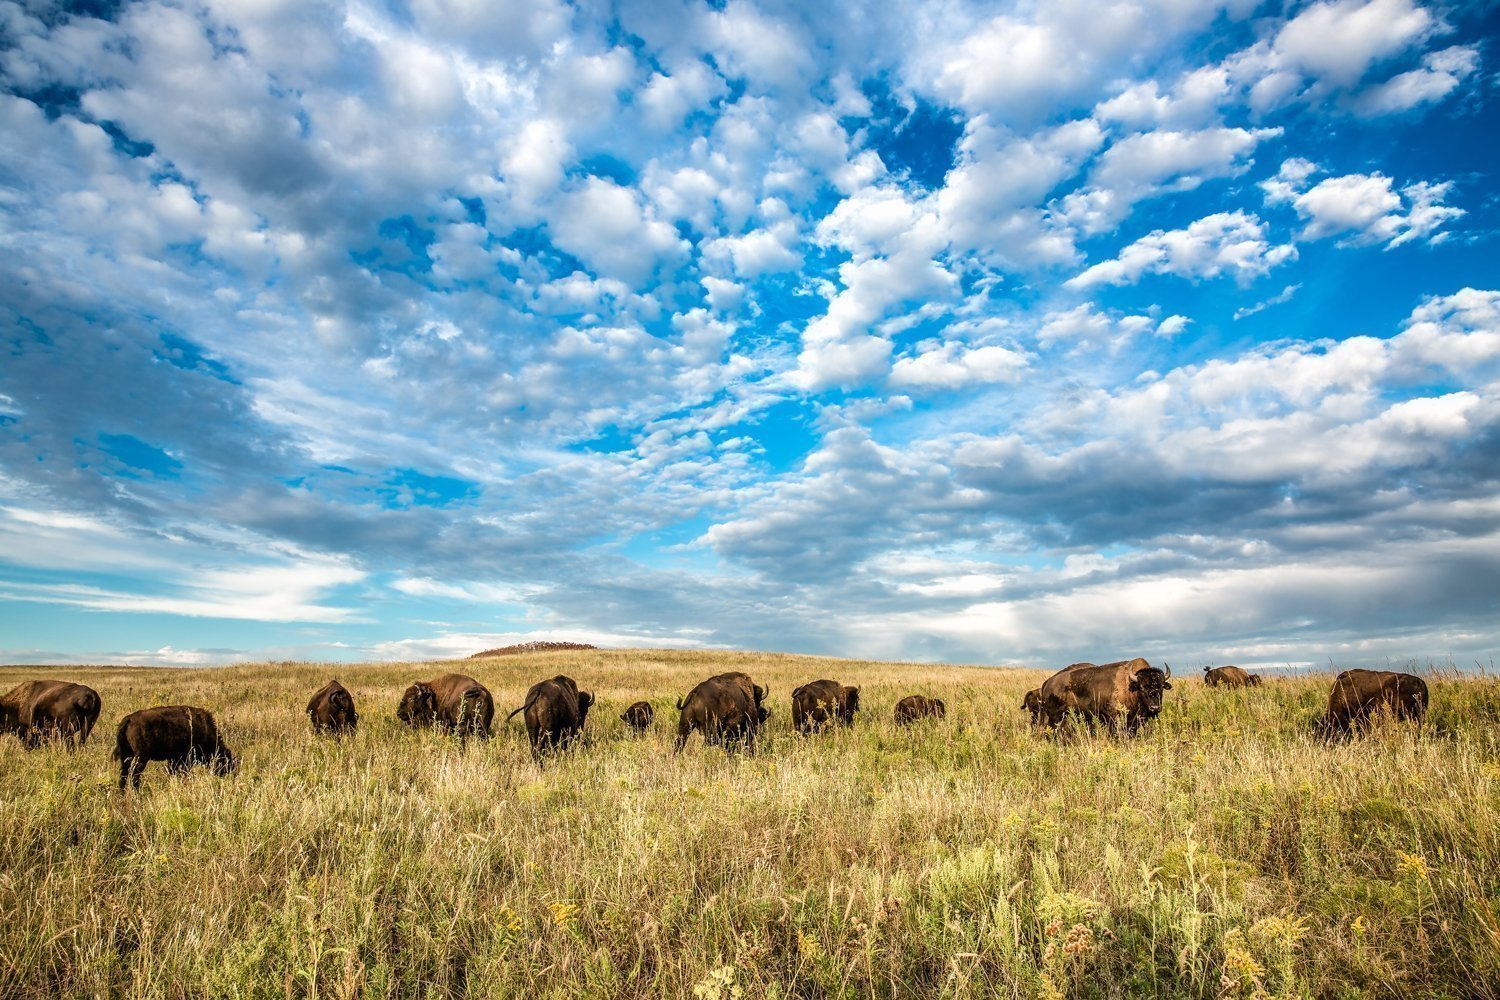 Bison Photography Wall Art Print - Picture of Herd of Buffalo Underneath Big Sky Western Home Decor 5x7 to 30x45 by Southern Plains Photography